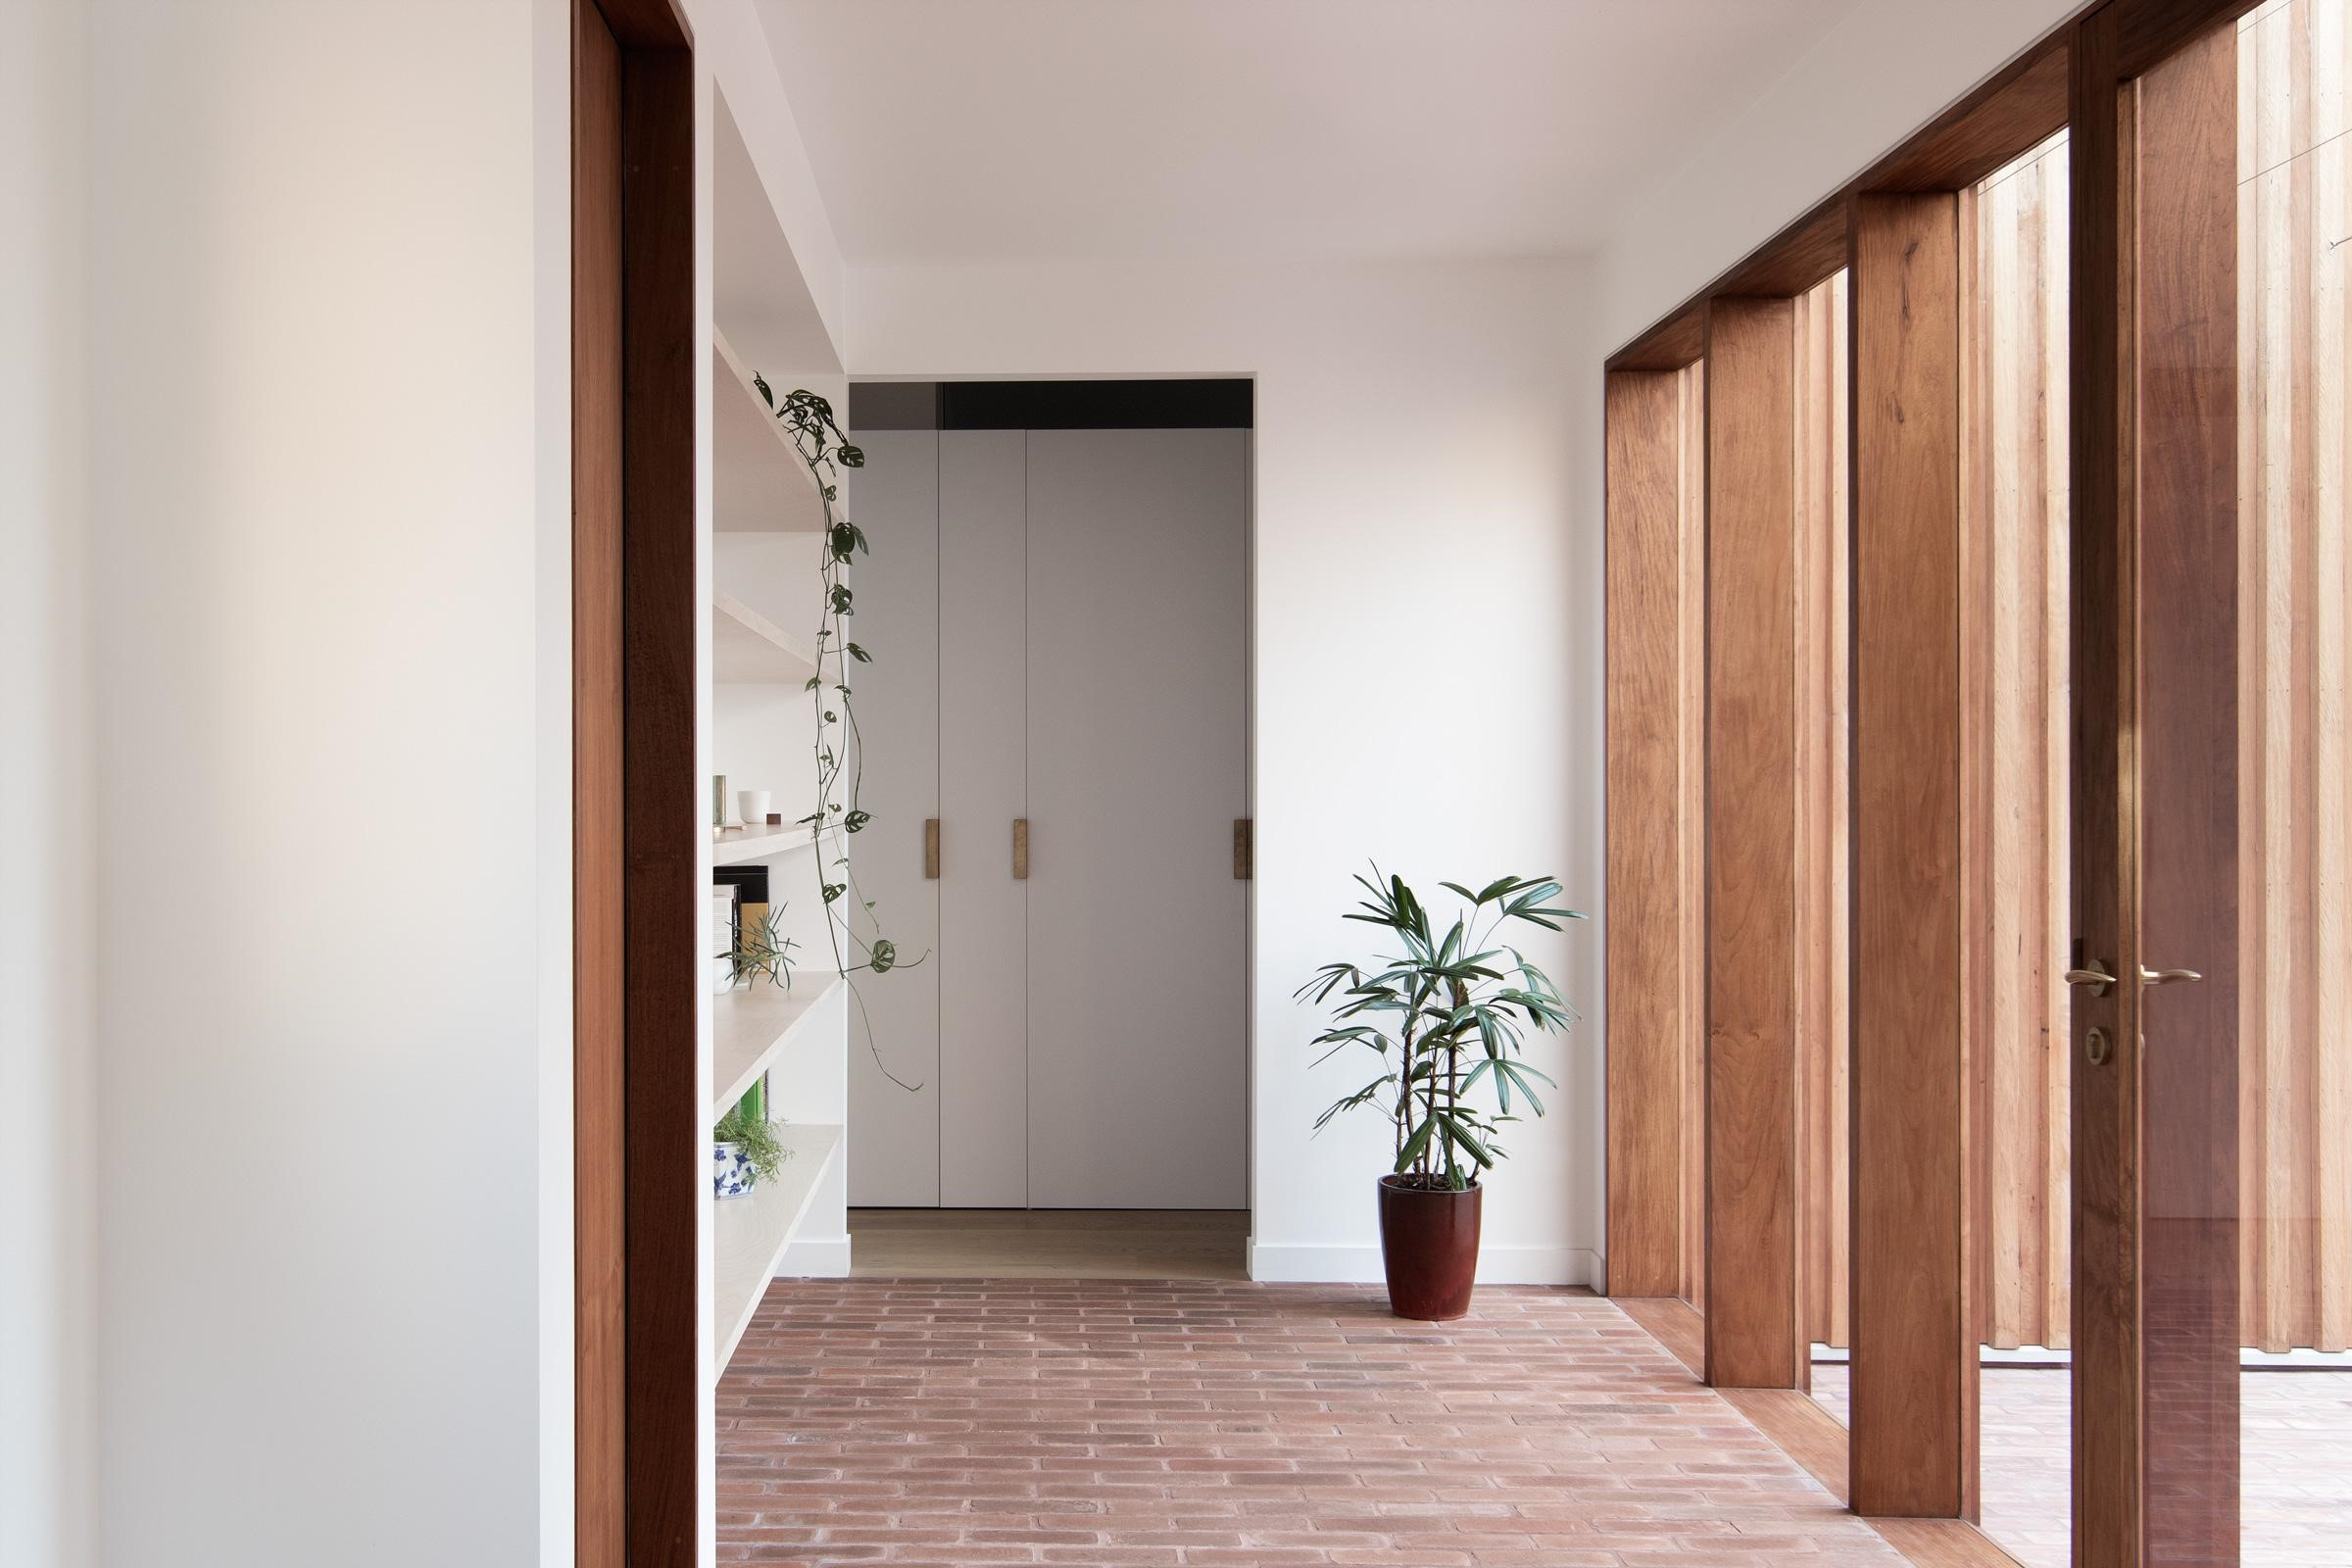 Gallery Of The Three Piece House By Trias Studio Local Australian Residential Architecture & Interiors Sydney, Nsw Image 7